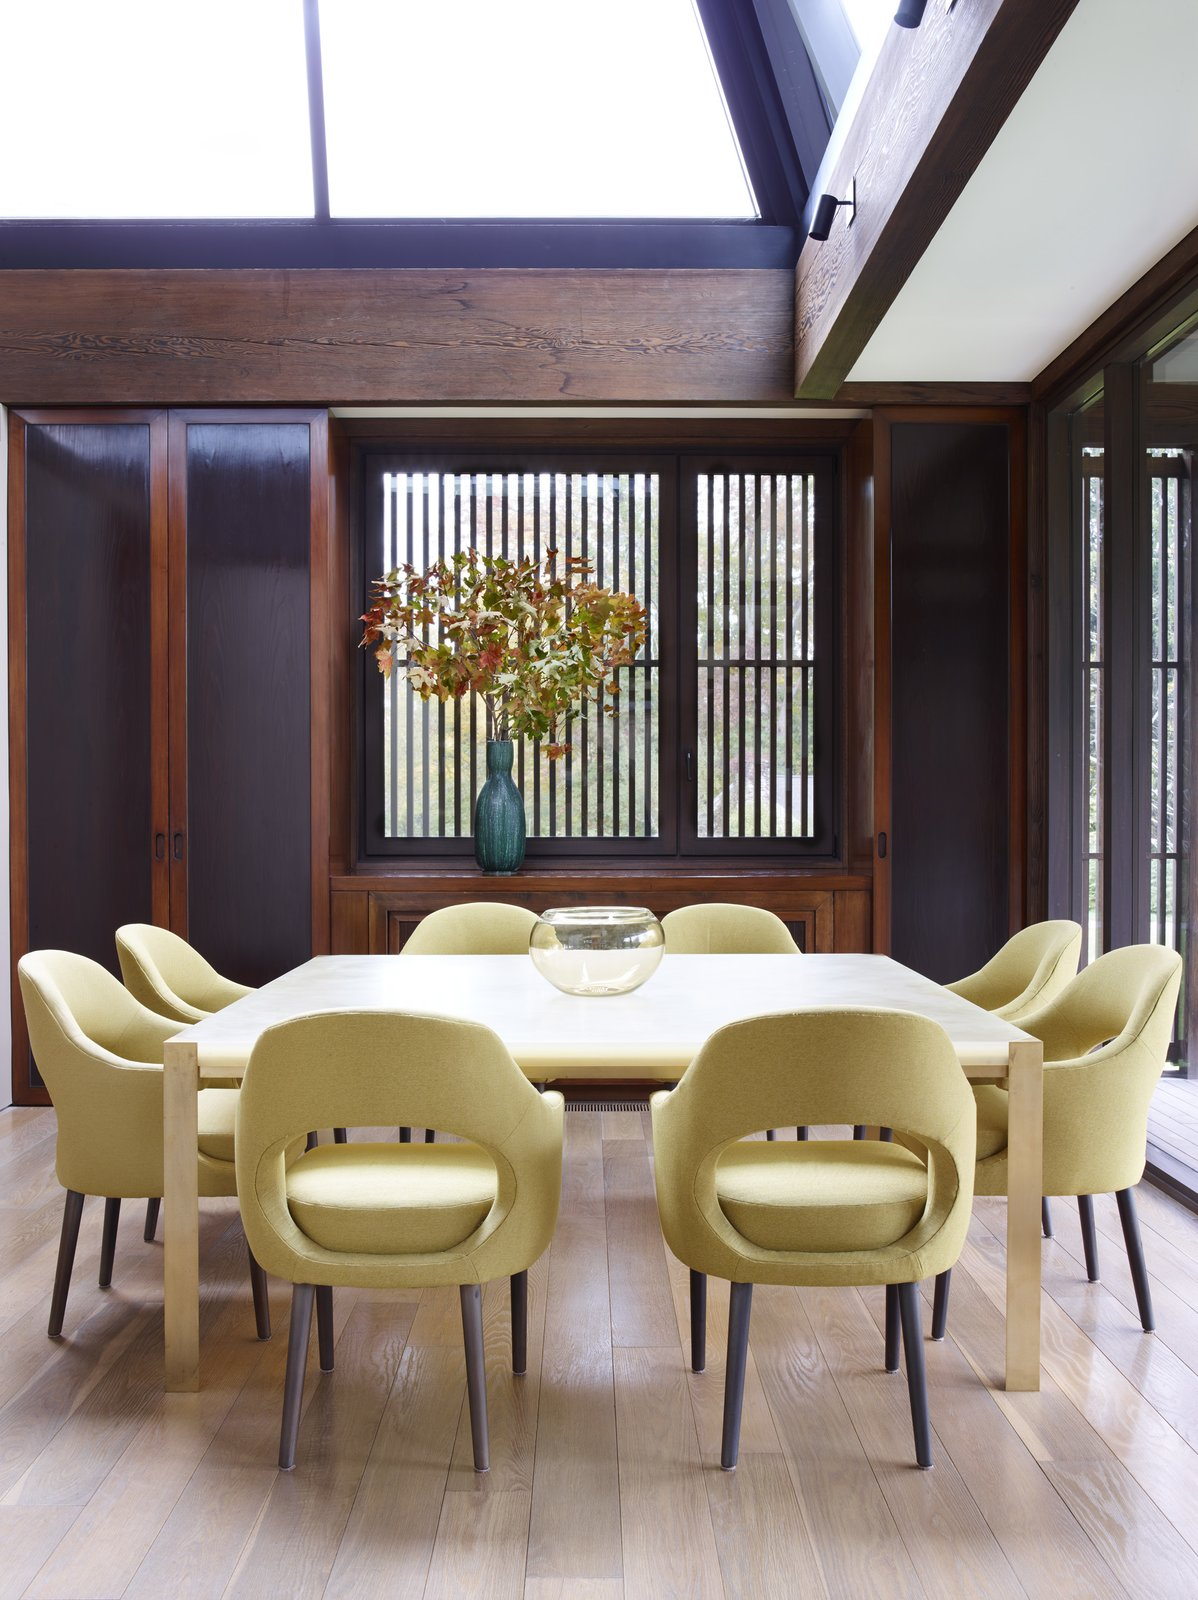 Dining Room, Table, Medium Hardwood Floor, Chair, and Track Lighting  Photo 10 of 15 in Feast Your Eyes on Fashion Designer Josie Natori's Japanese-Inspired Home